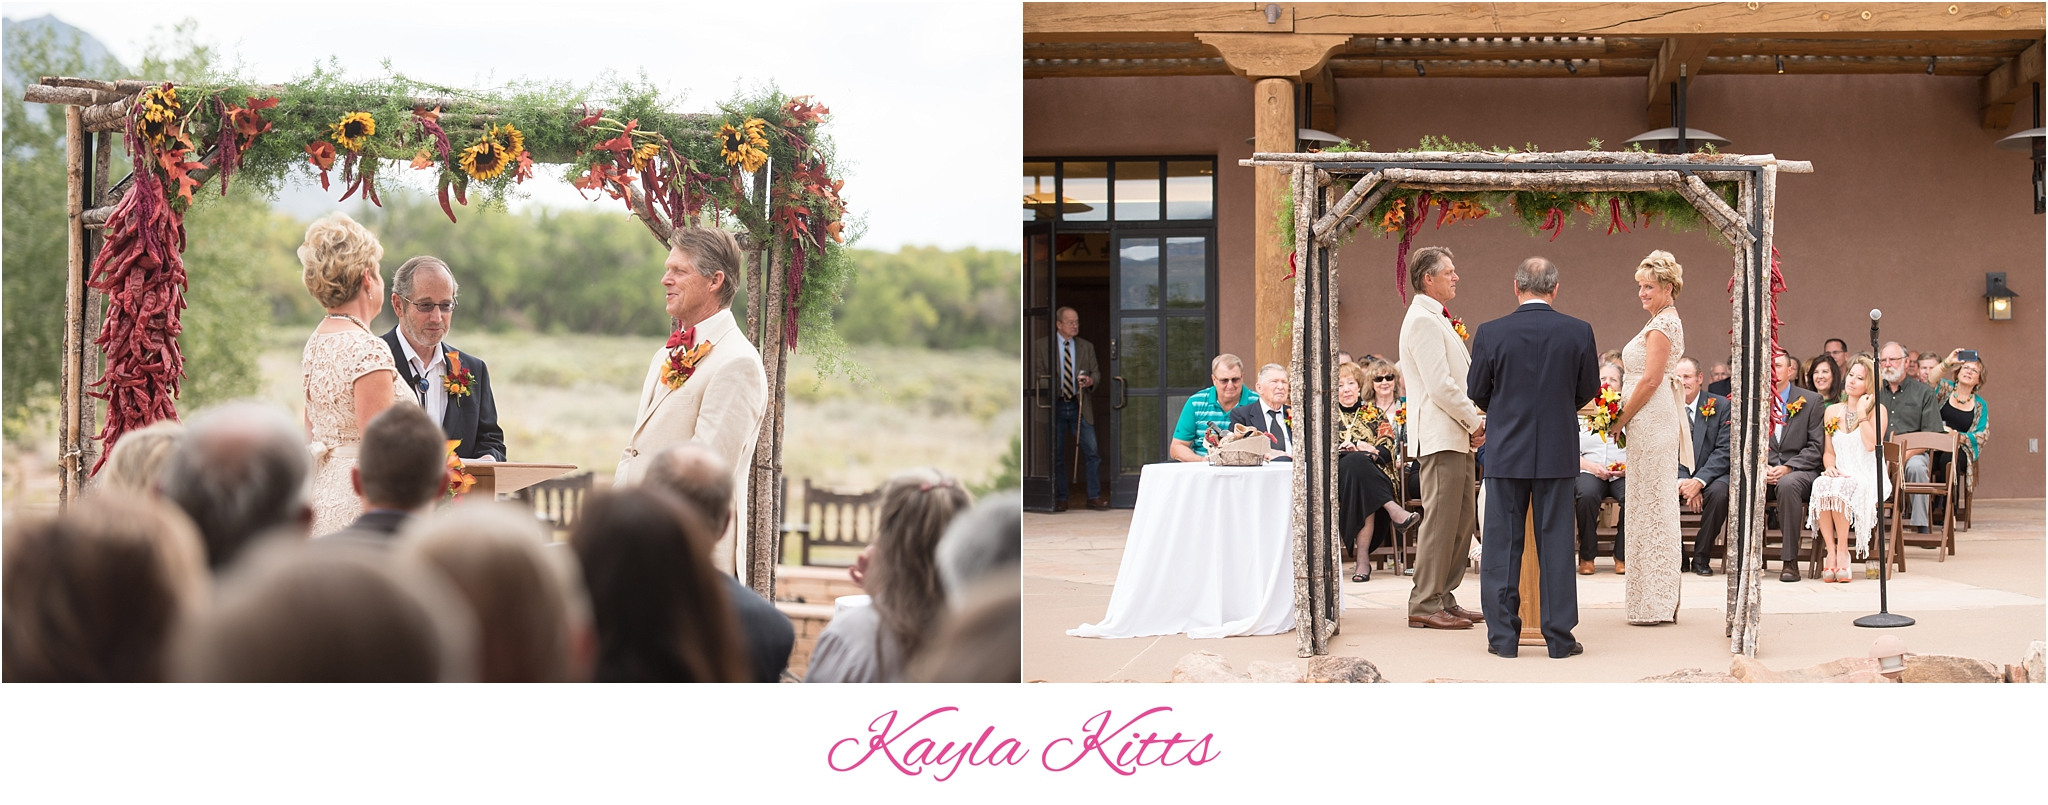 kayla kitts photography - albuquerque wedding photographer - albuquerque wedding photography - albuquerque venue - hyatt tamaya - hyatt tamaya wedding - new mexico wedding photographer_0043.jpg